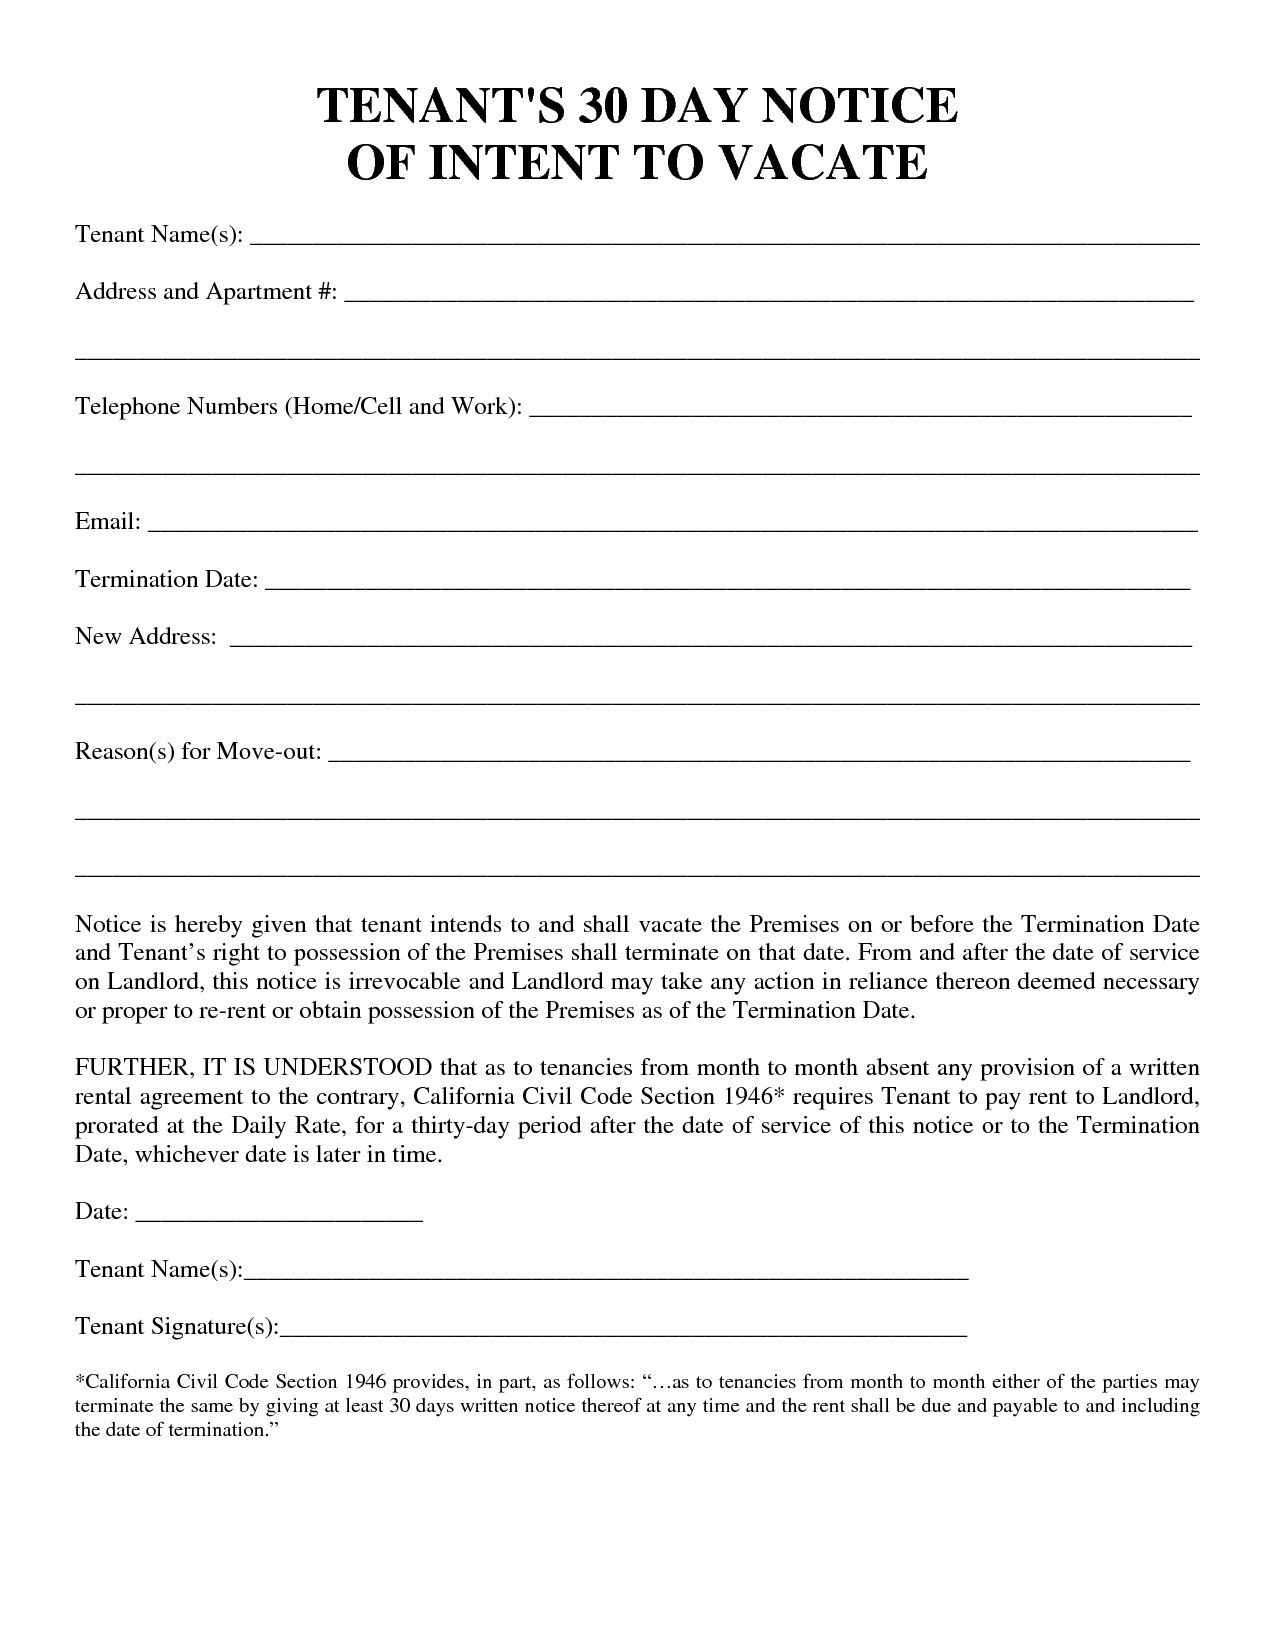 Notice To Vacate Template Stylish 30 Day Notice To Vacate Template Of 36 High Quality Notice Being A Landlord Eviction Notice 30 Day Eviction Notice